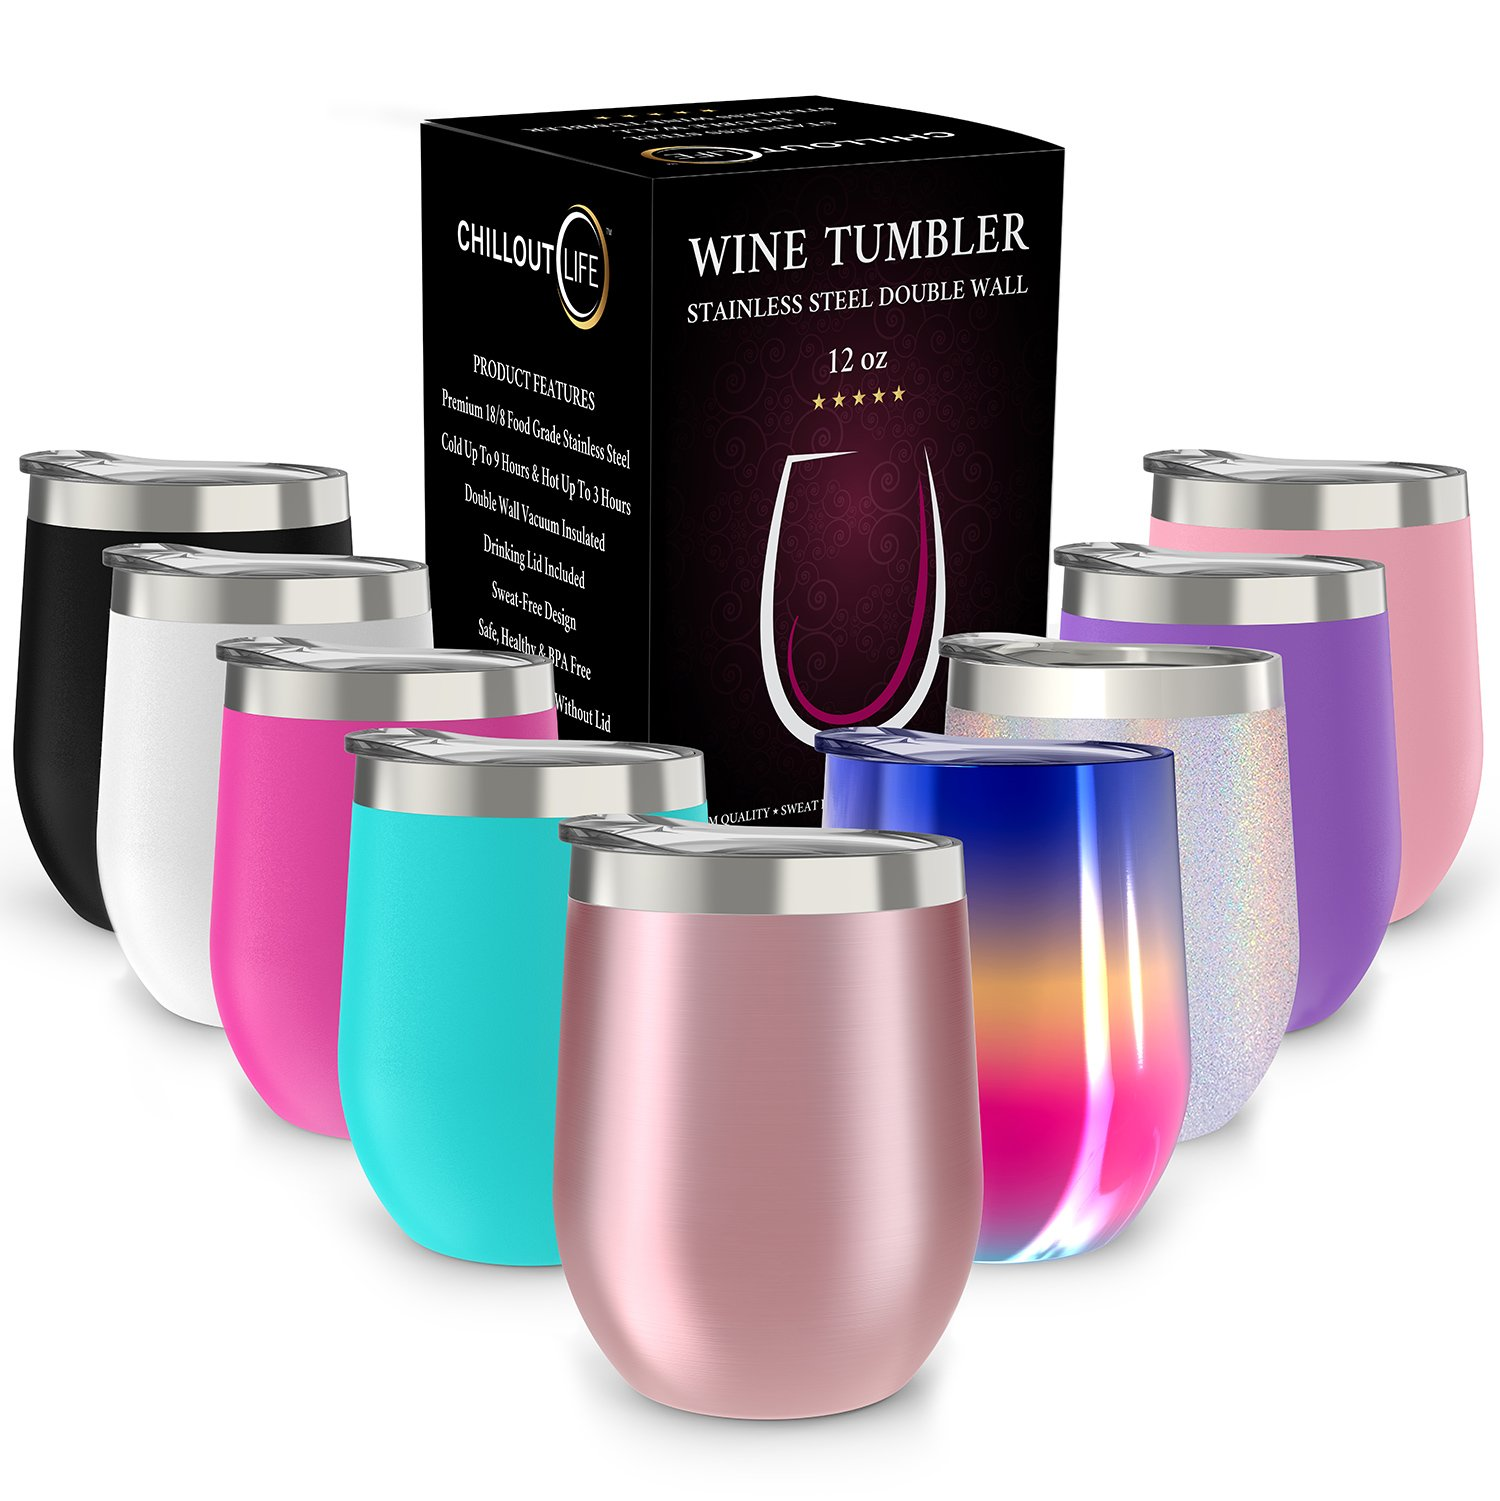 CHILLOUT LIFE Stainless Steel Stemless Wine Glass Tumbler with Lid, 12 oz   Double Wall Vacuum Insulated Travel Tumbler Cup for Coffee, Wine, Cocktails, Ice Cream - Rose Gold Wine Tumbler